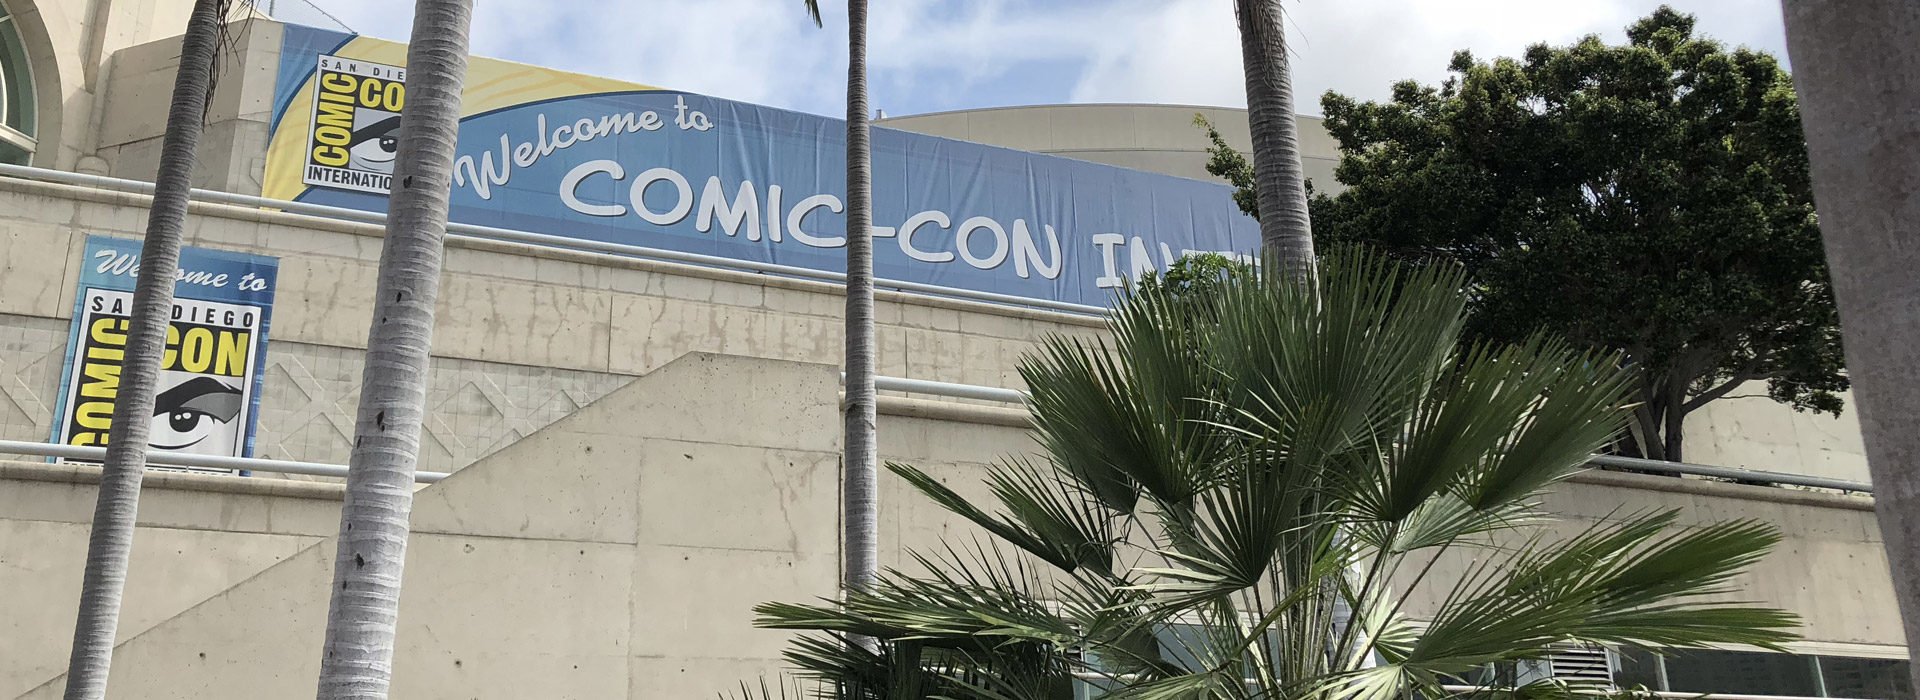 San diego comic 2018, Album Comics Team